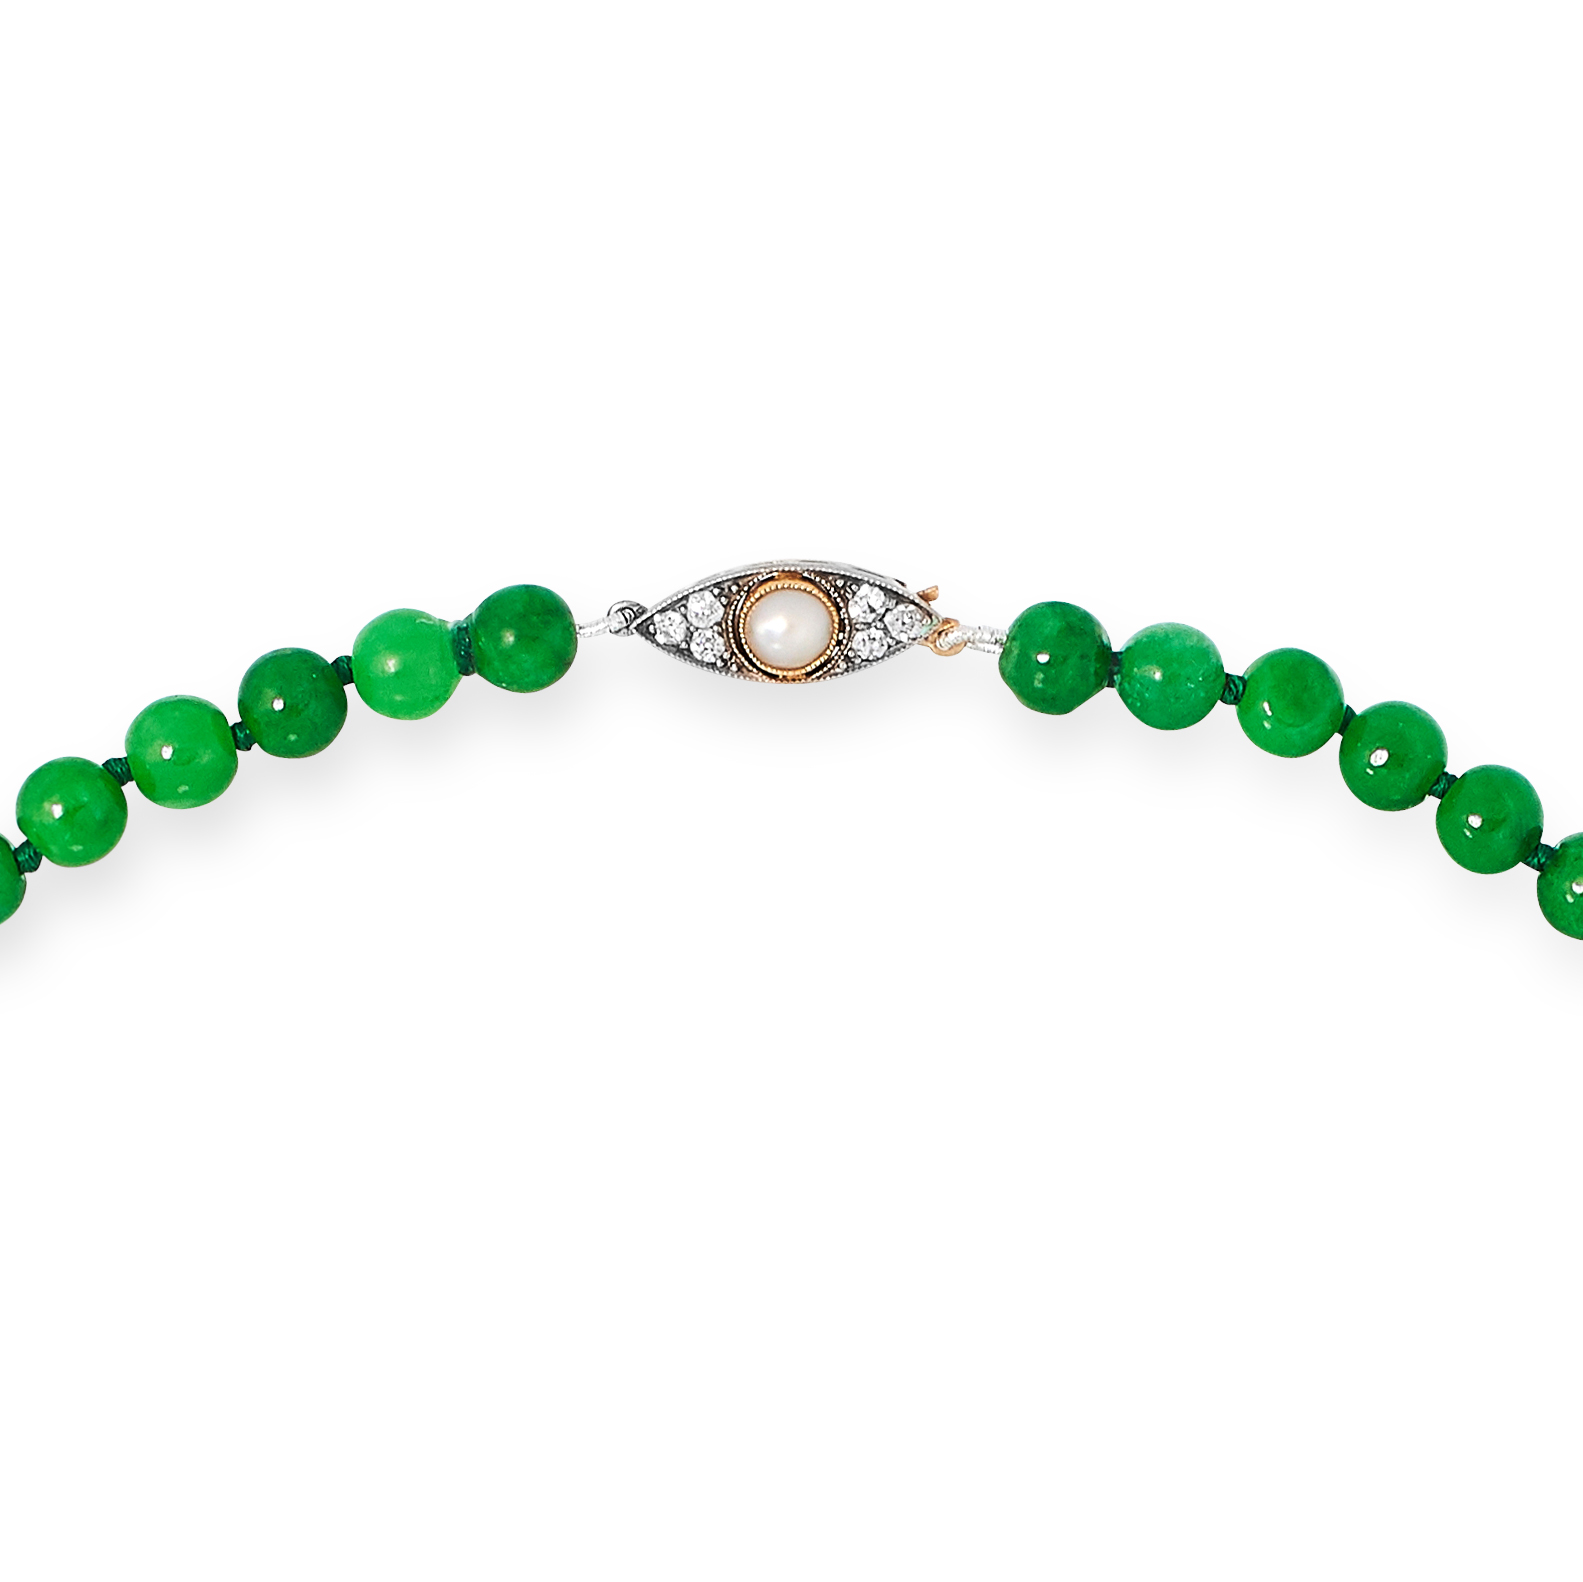 JADE BEAD NECKLACE comprising of a single row of jade beads, with round cut diamond and pearl clasp, - Image 2 of 2